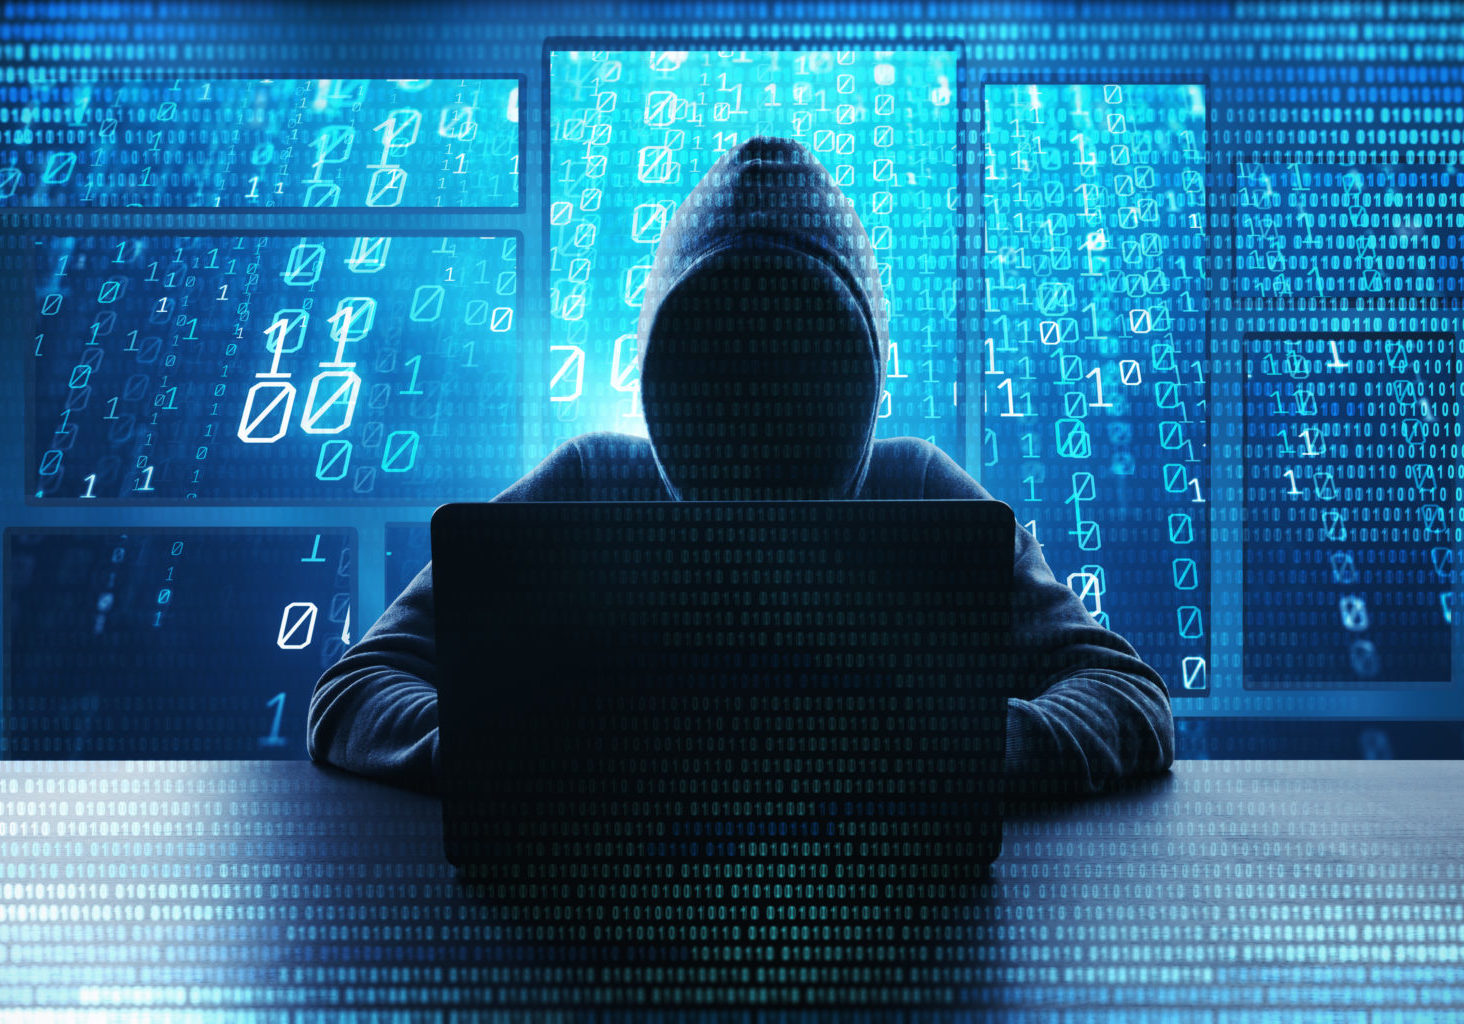 Hacking,And,Malware,Concept.,Hacker,Using,Abstract,Laptop,With,Binary